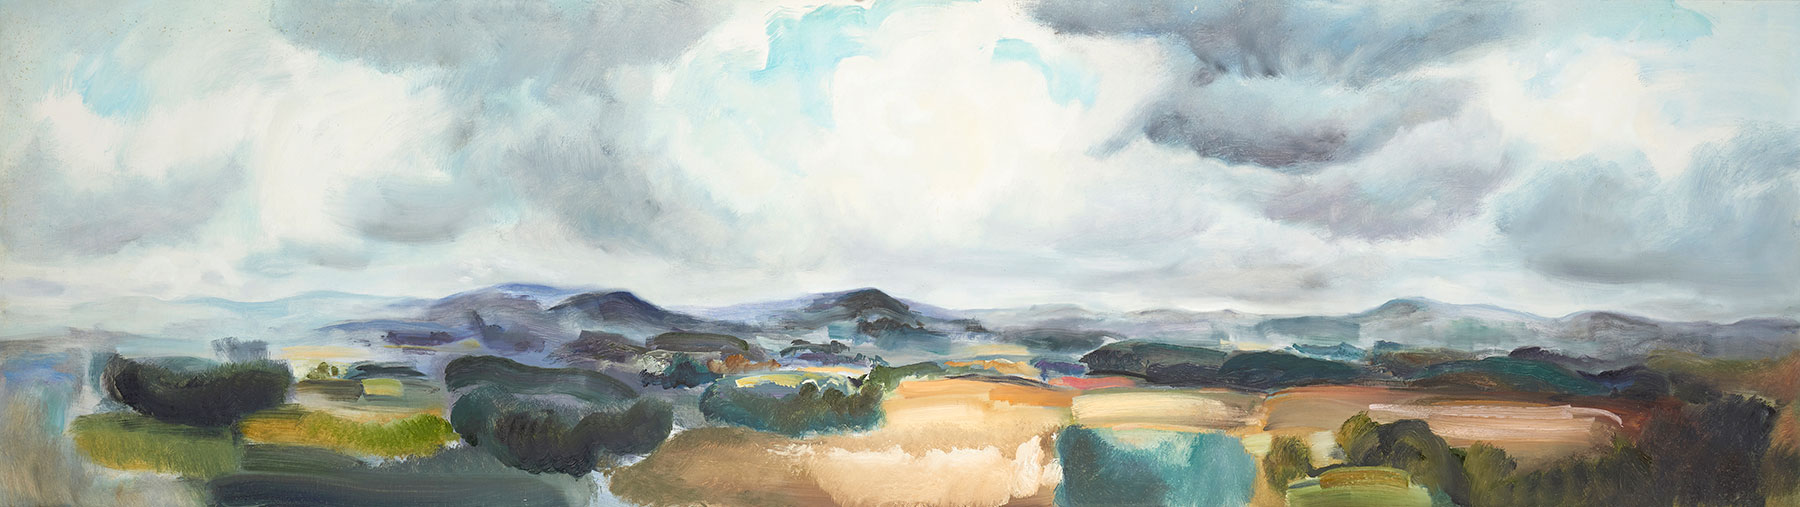 Lowland Panorama September, 1972, 61 x 213 cm, oil on canvas